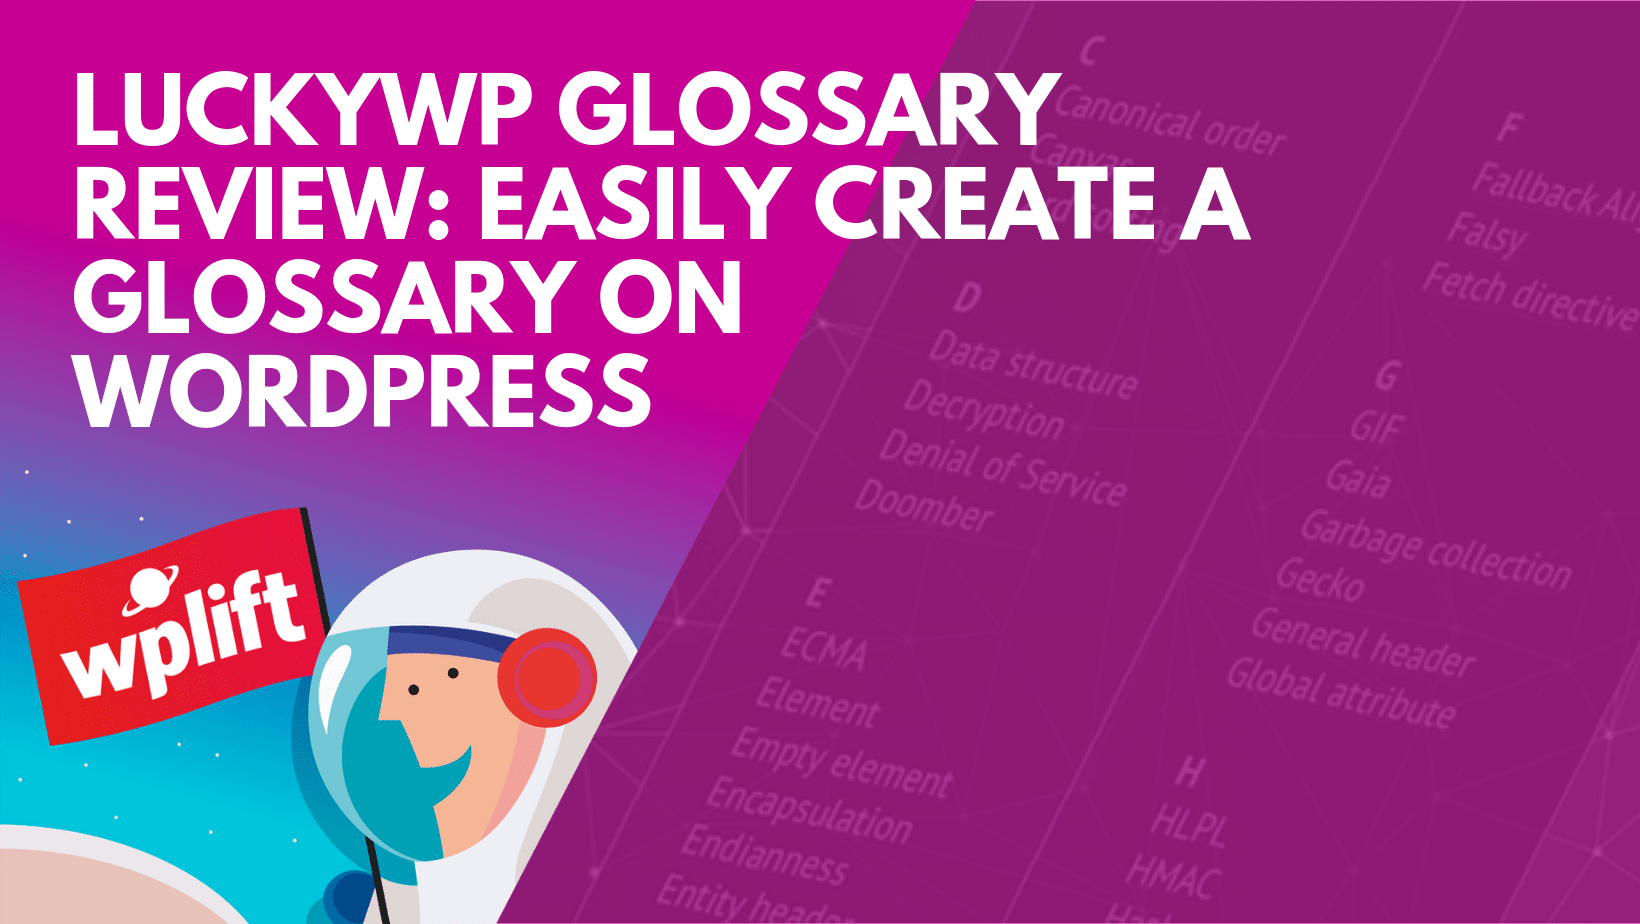 LuckyWP Glossary Review: Easily Create A Glossary On WordPress